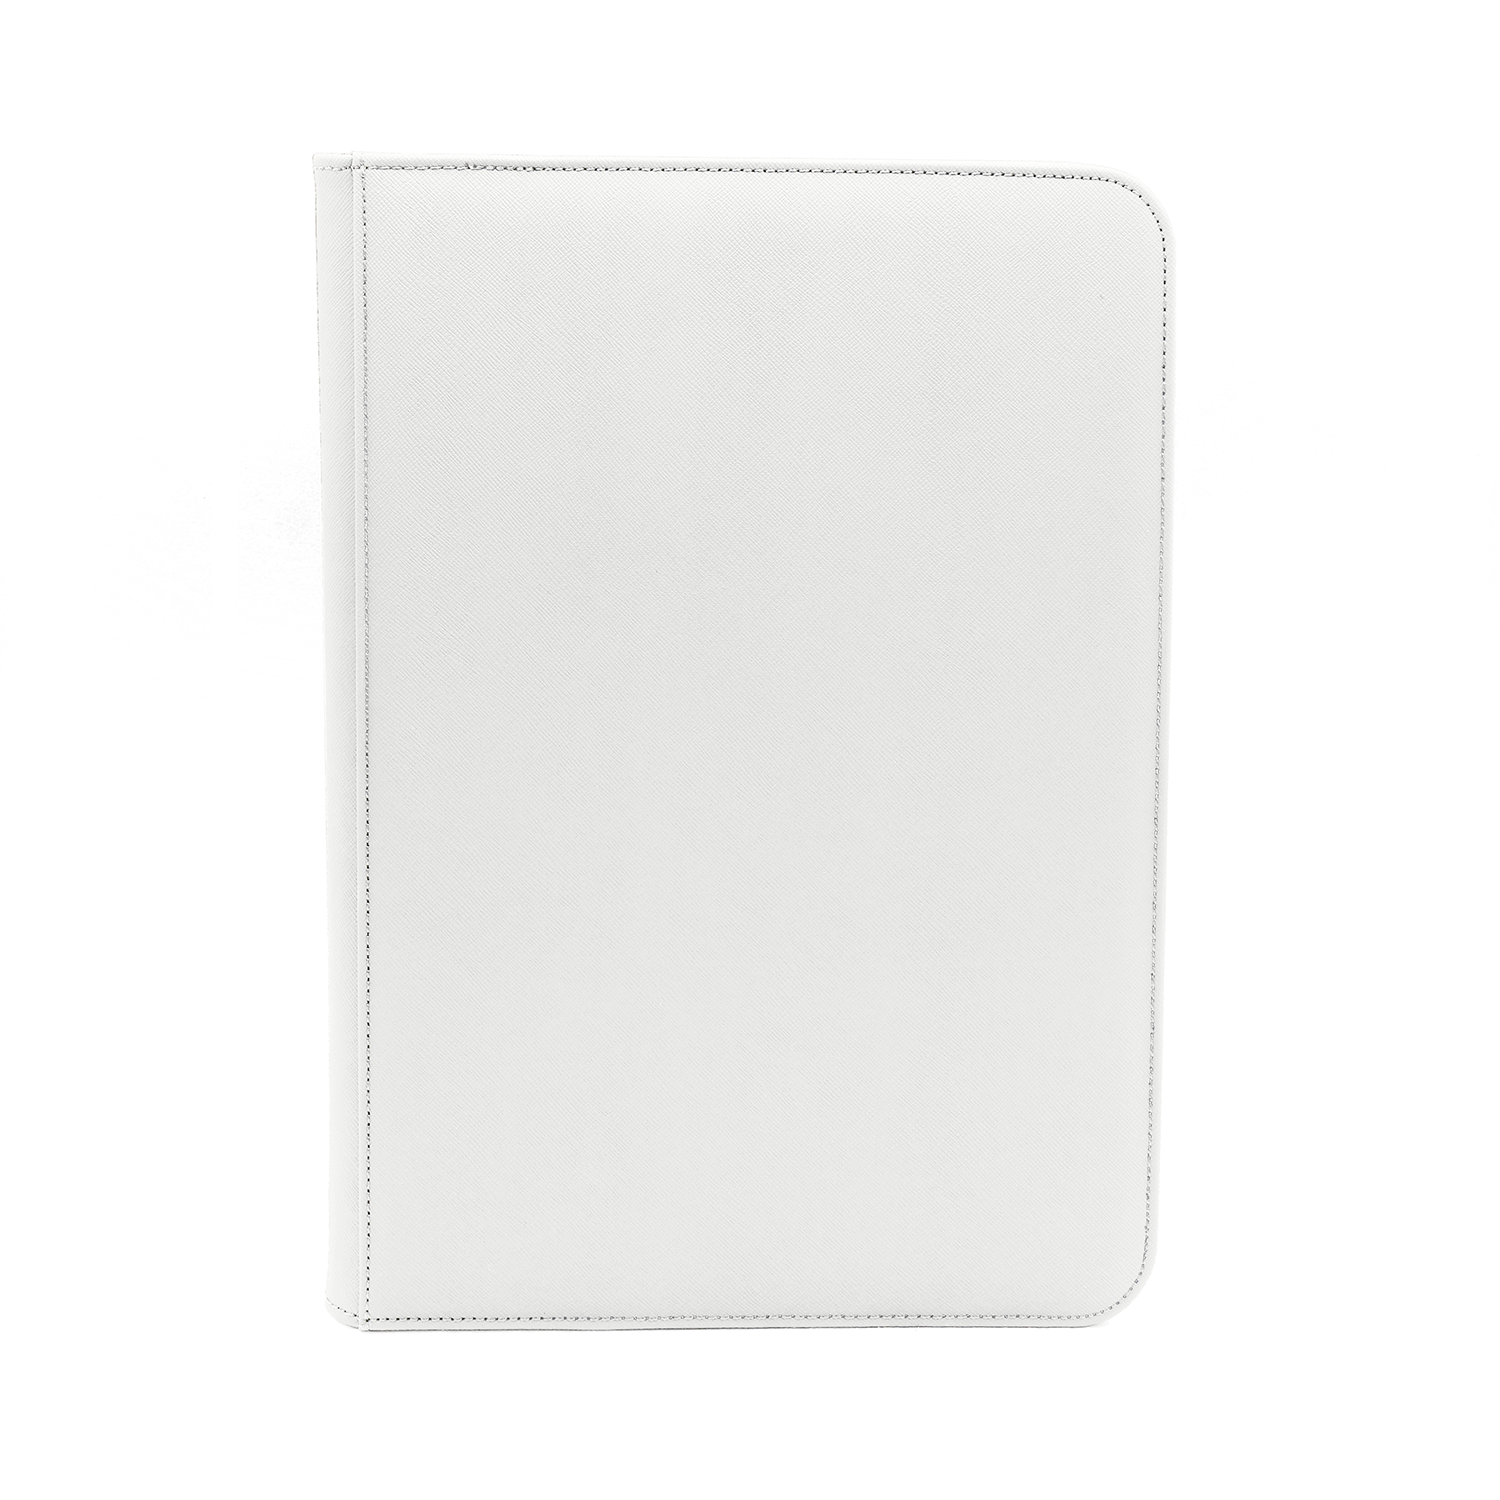 Dex Protection: Dex Zipper Binder 9 - White